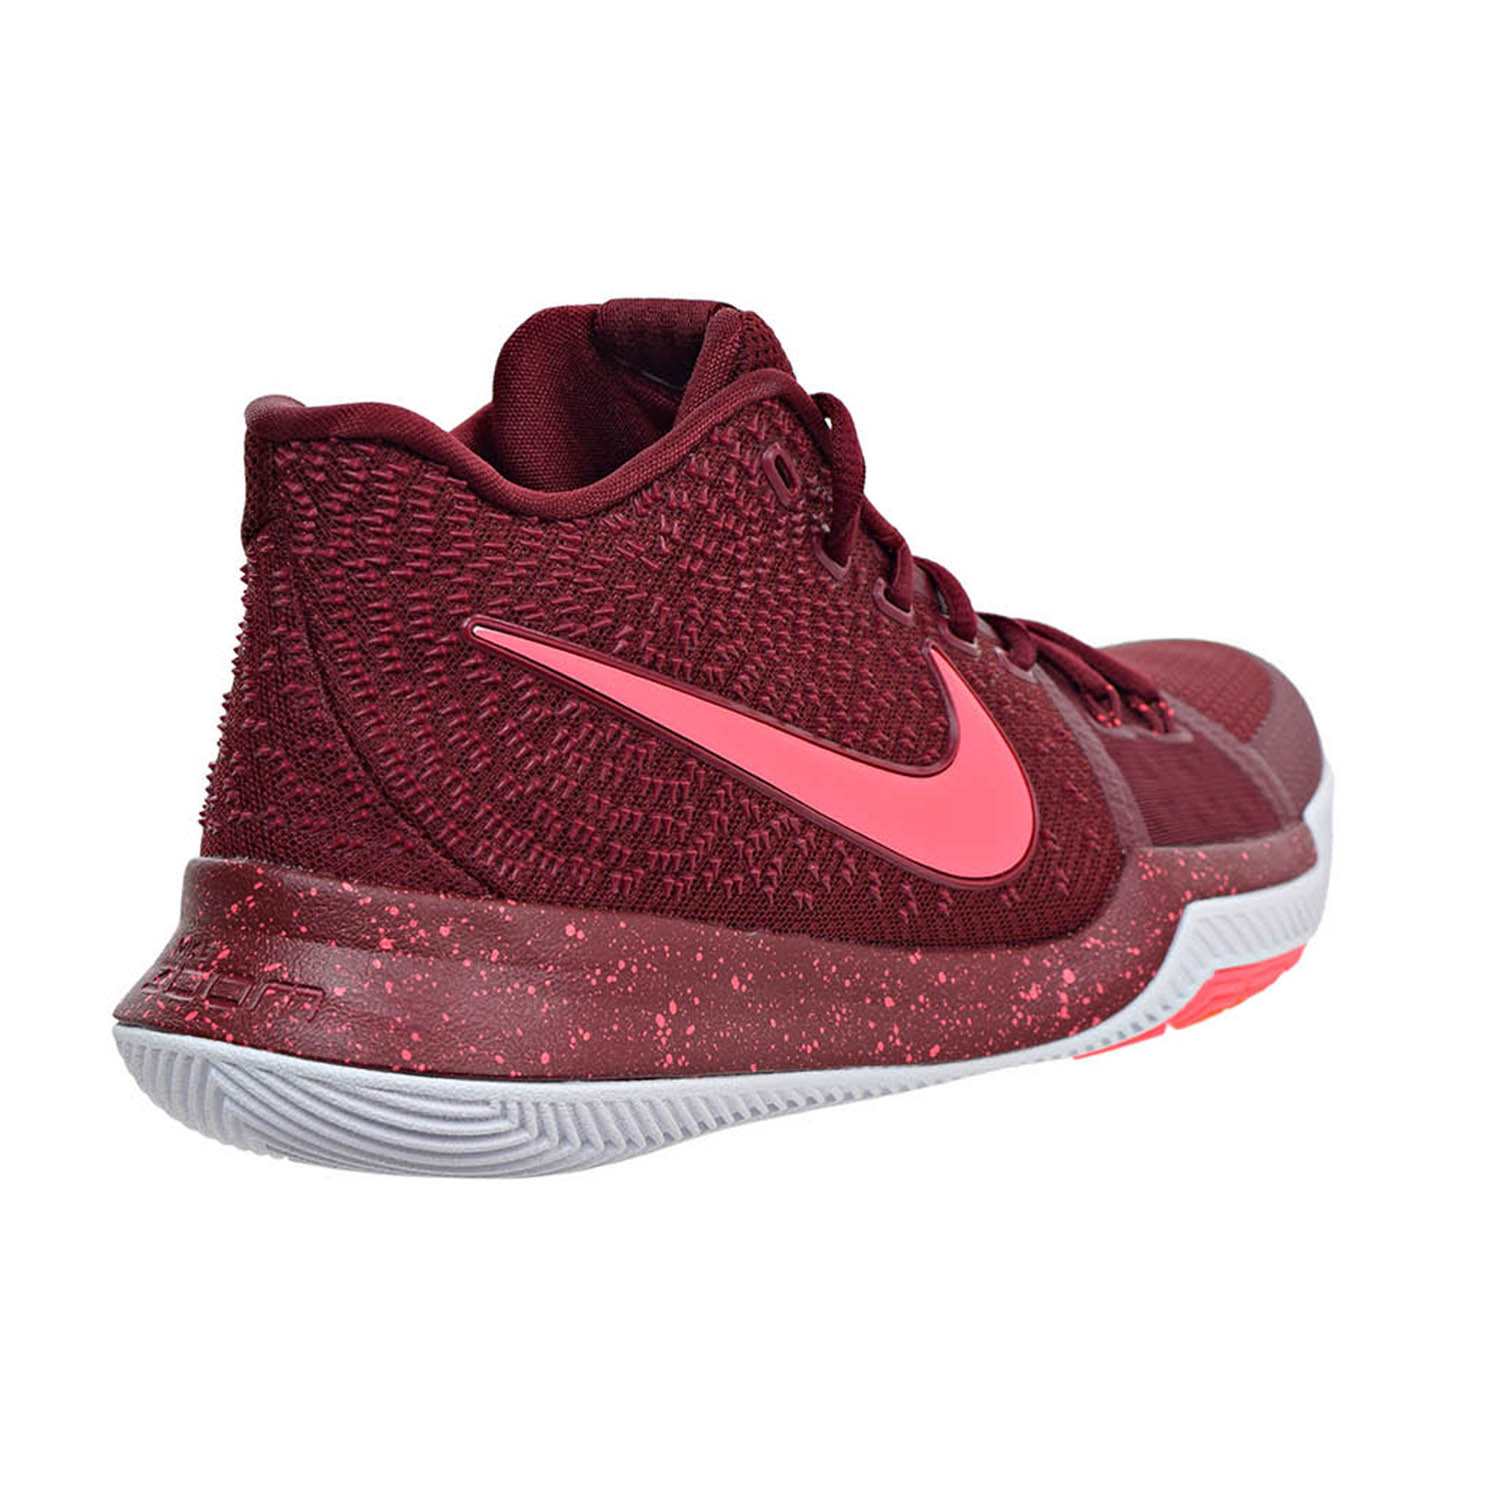 pretty nice fc4a9 bb31b ... cheapest nike kyrie 3 hommes et 39 s rouge chaussure s équipe rouge s  c9ed6 d53ca ...